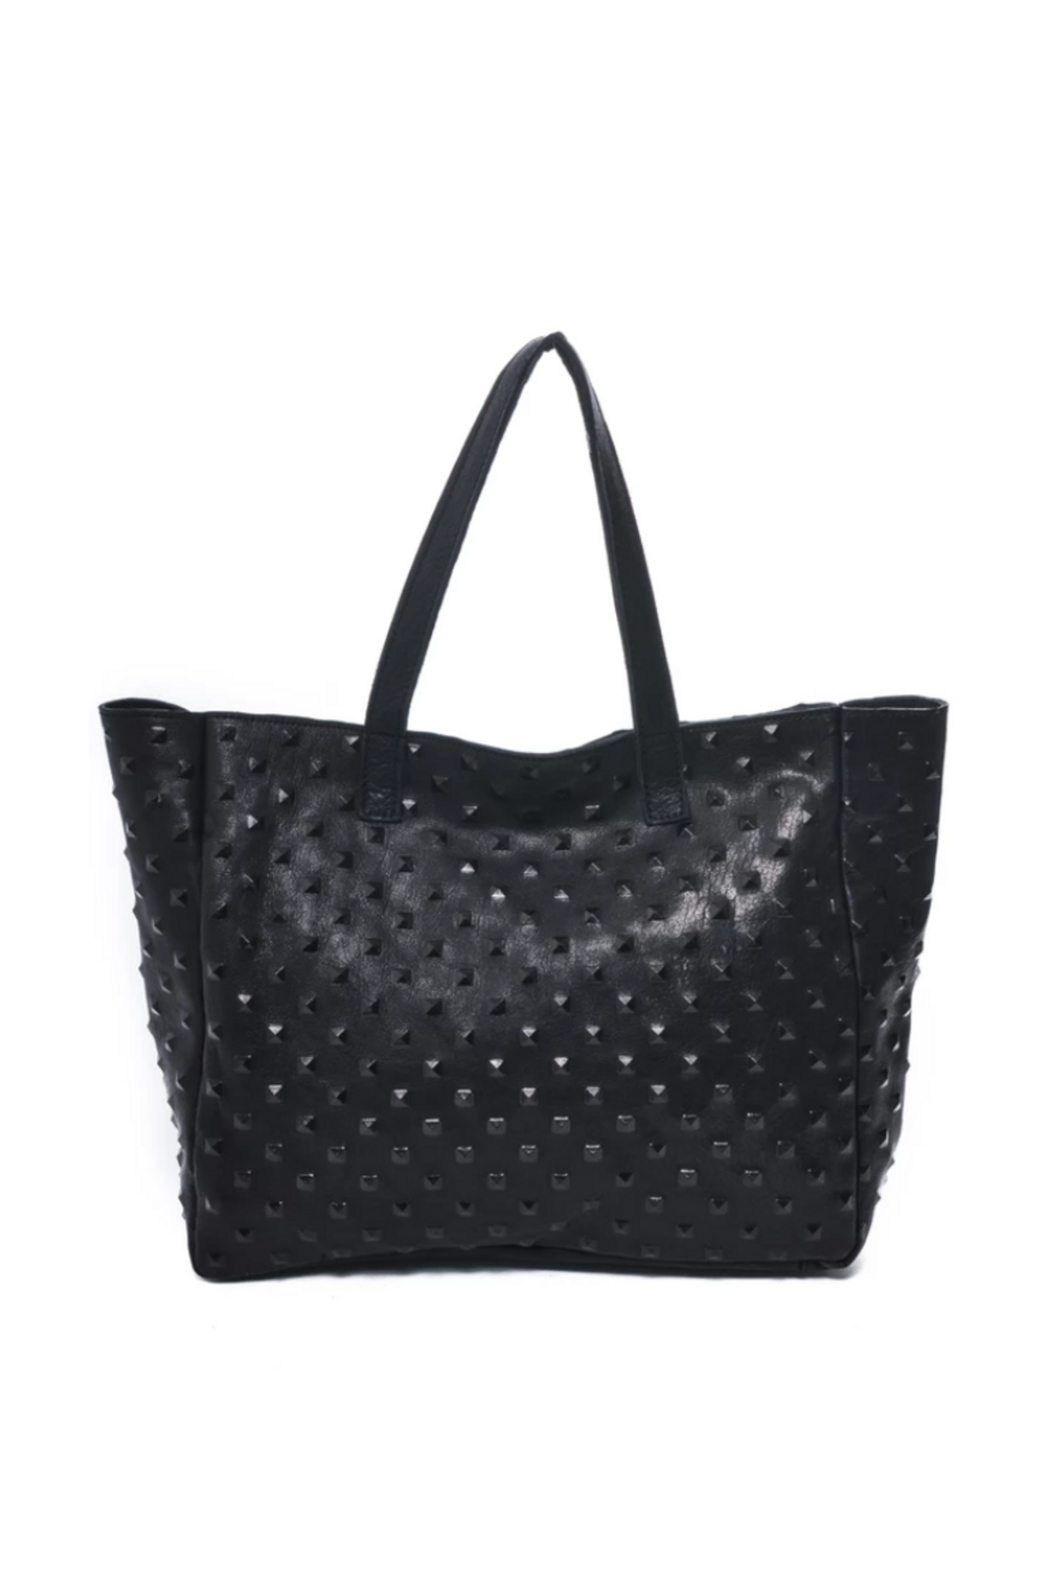 Carla Mancini Amber Tote Black Studded - Front Cropped Image